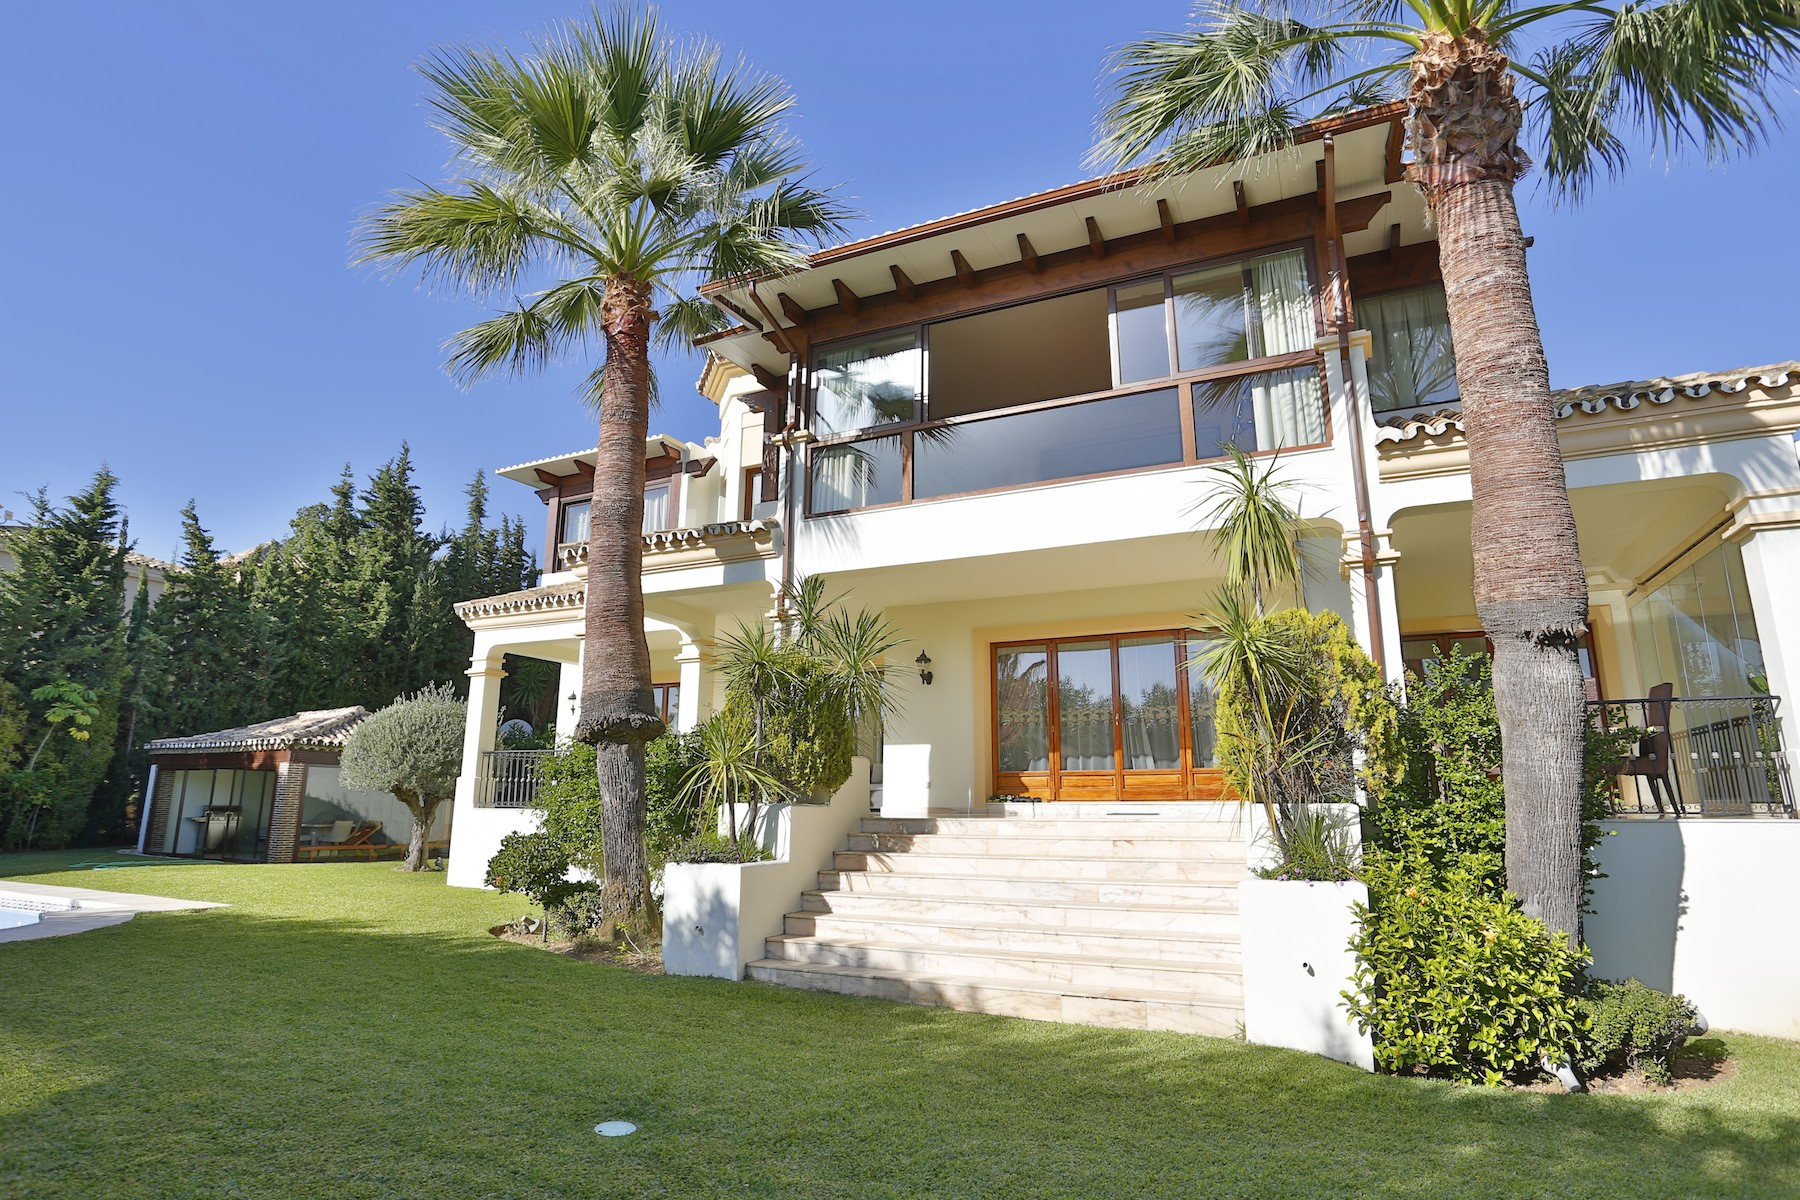 Moradia para Venda às Elegant villa situated in the best sought after residential area in Marbella Sierra Blanca Marbella, Costa Del Sol, 29600 Espanha